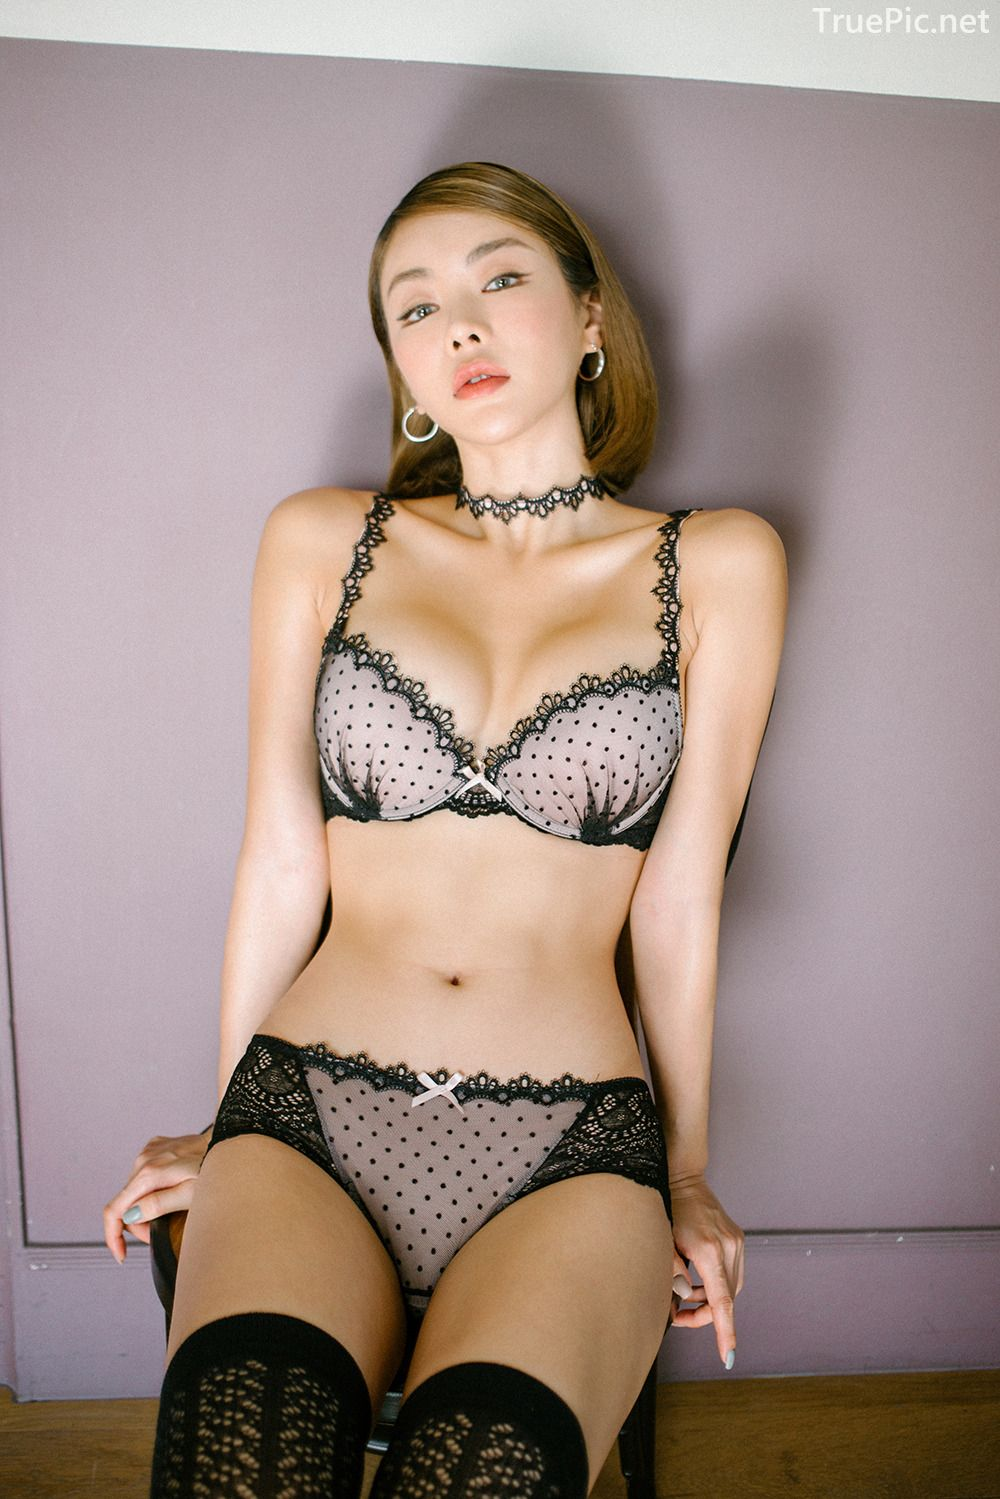 Lingerie queen An Seo Rin - Choker Lingerie Set - Korean model fashion - Picture 8